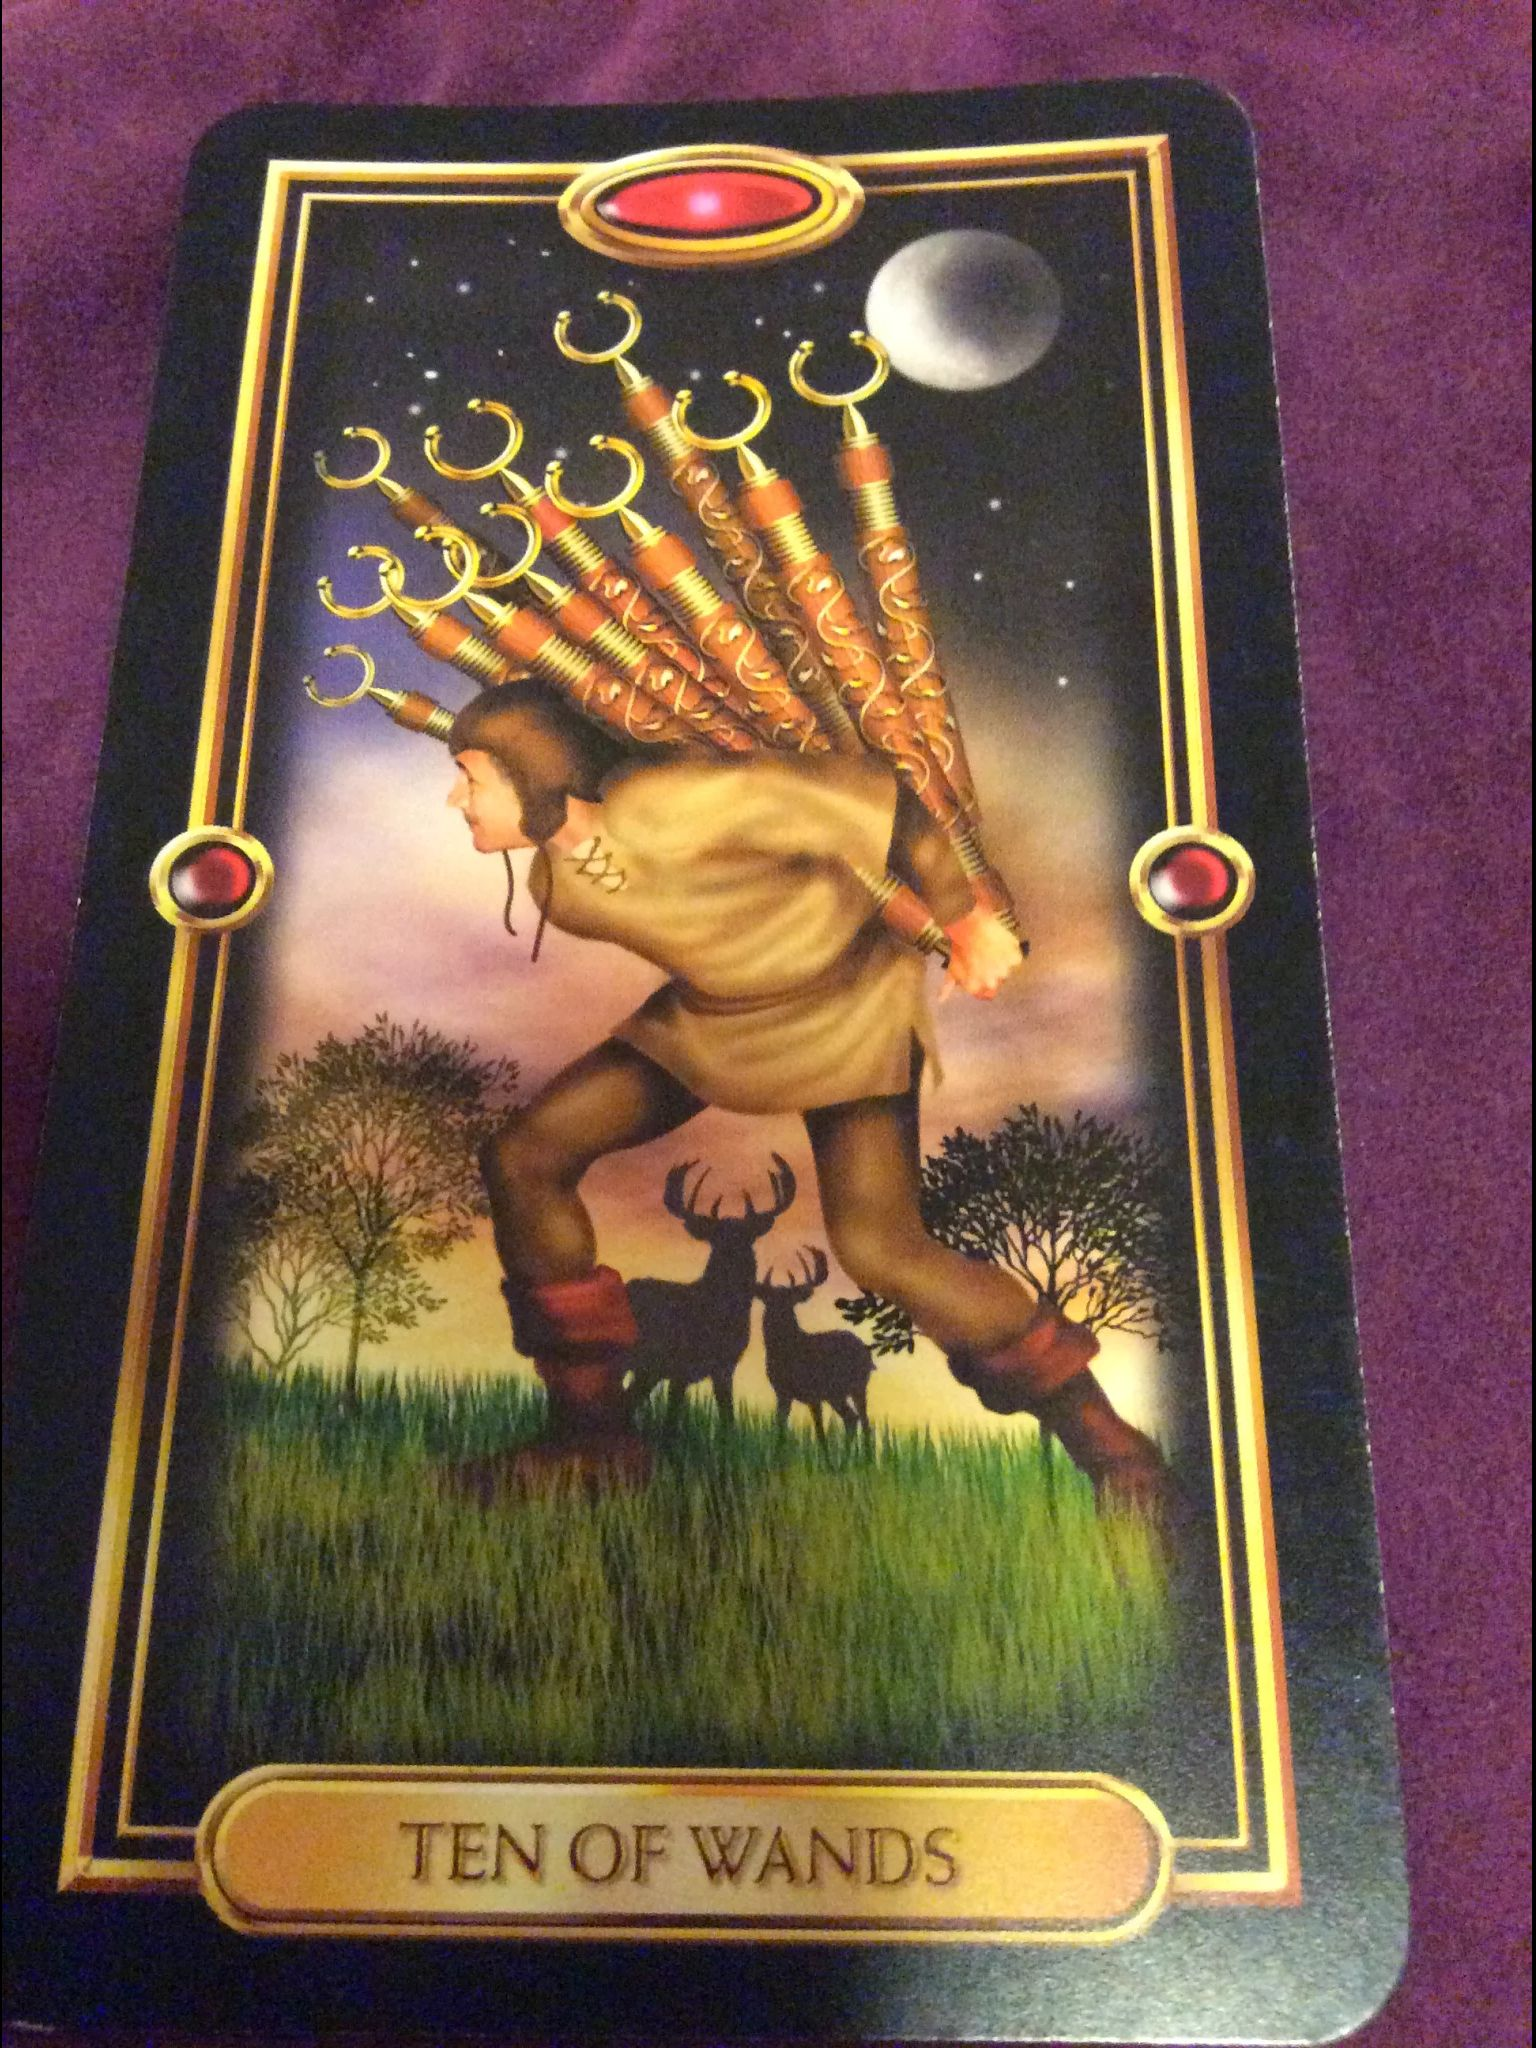 10 of wands from the gilded tarot deck by ciro marchetti